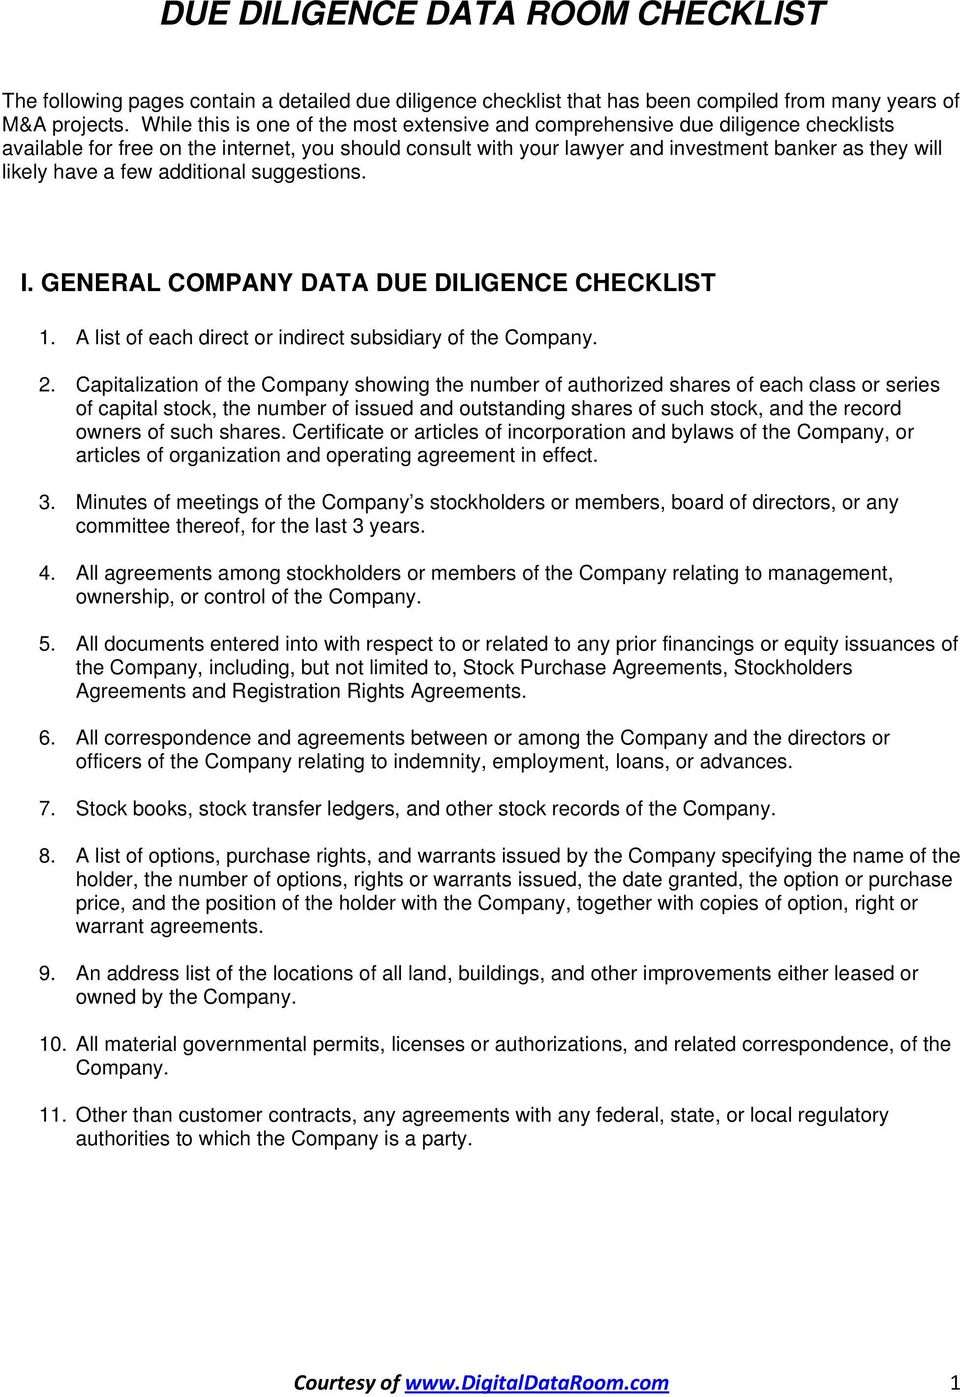 Due Diligence Data Room Checklist Pdf